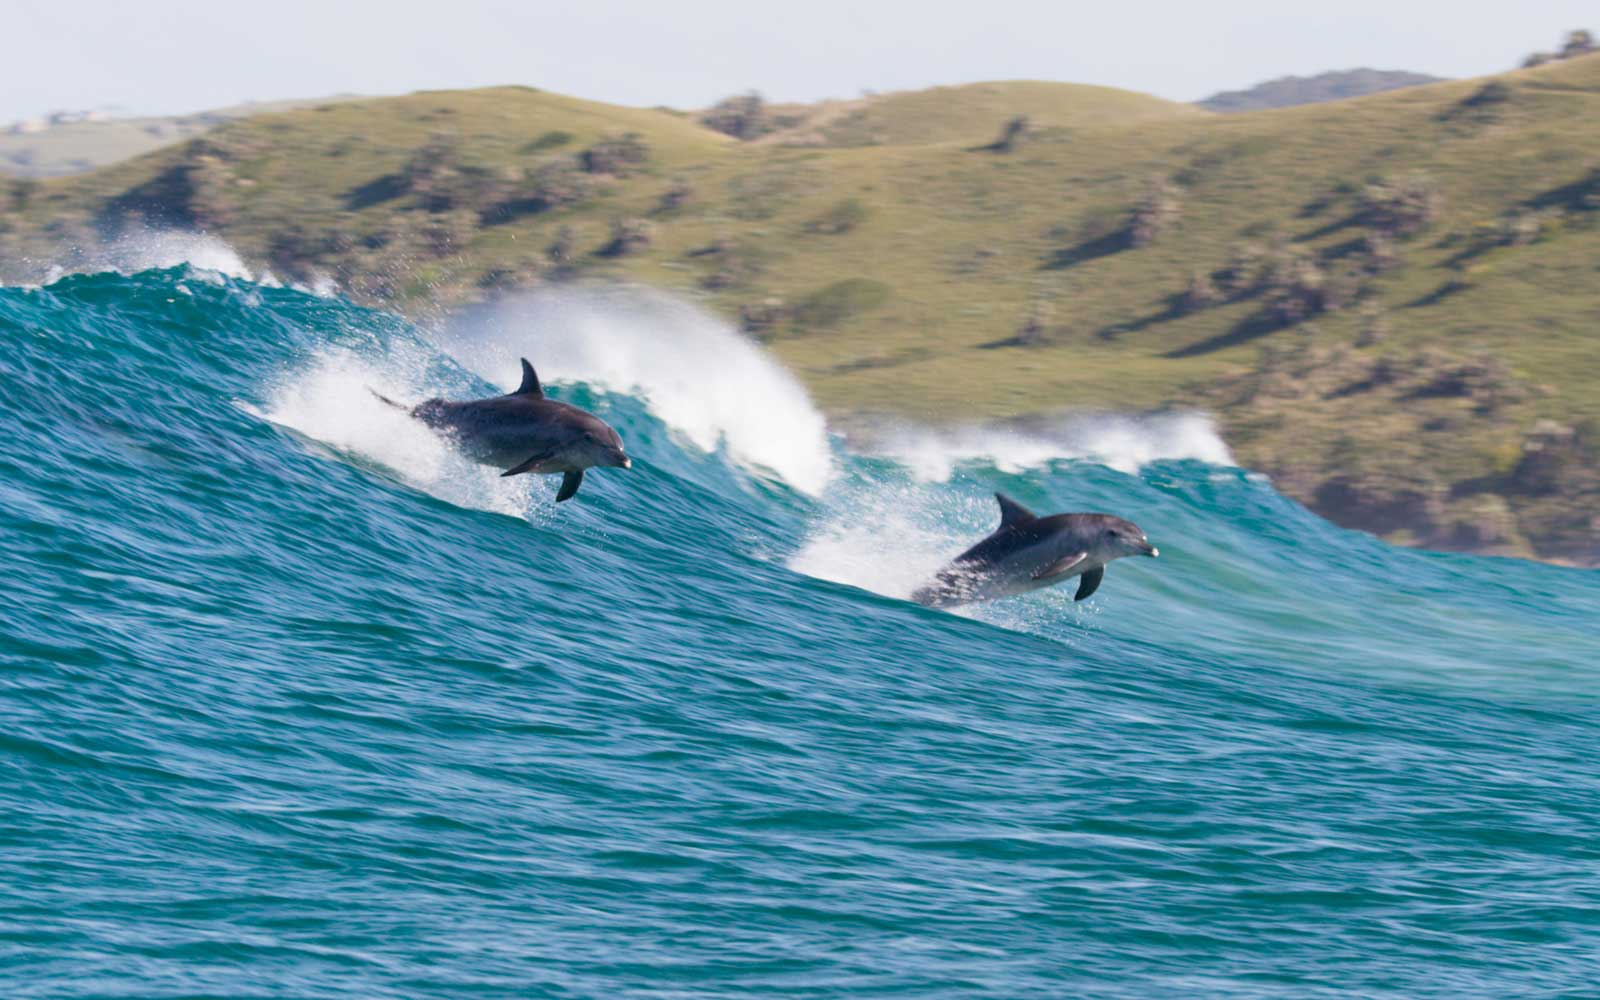 Dolphins in the water